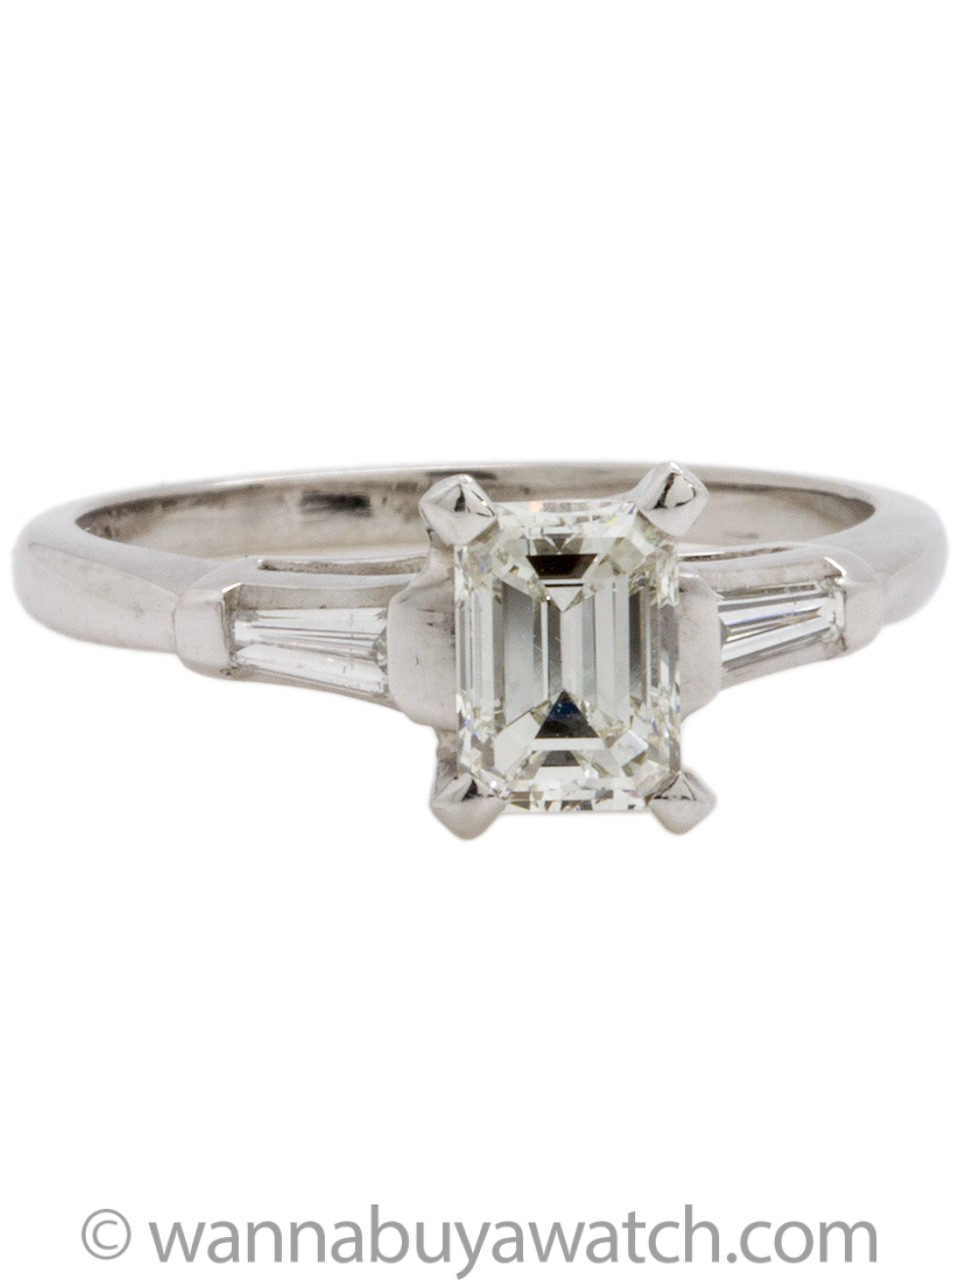 Vintage Platinum Engagement Ring 0.79ct I-VVS2 Emerald Cut Diamond circa 1950s